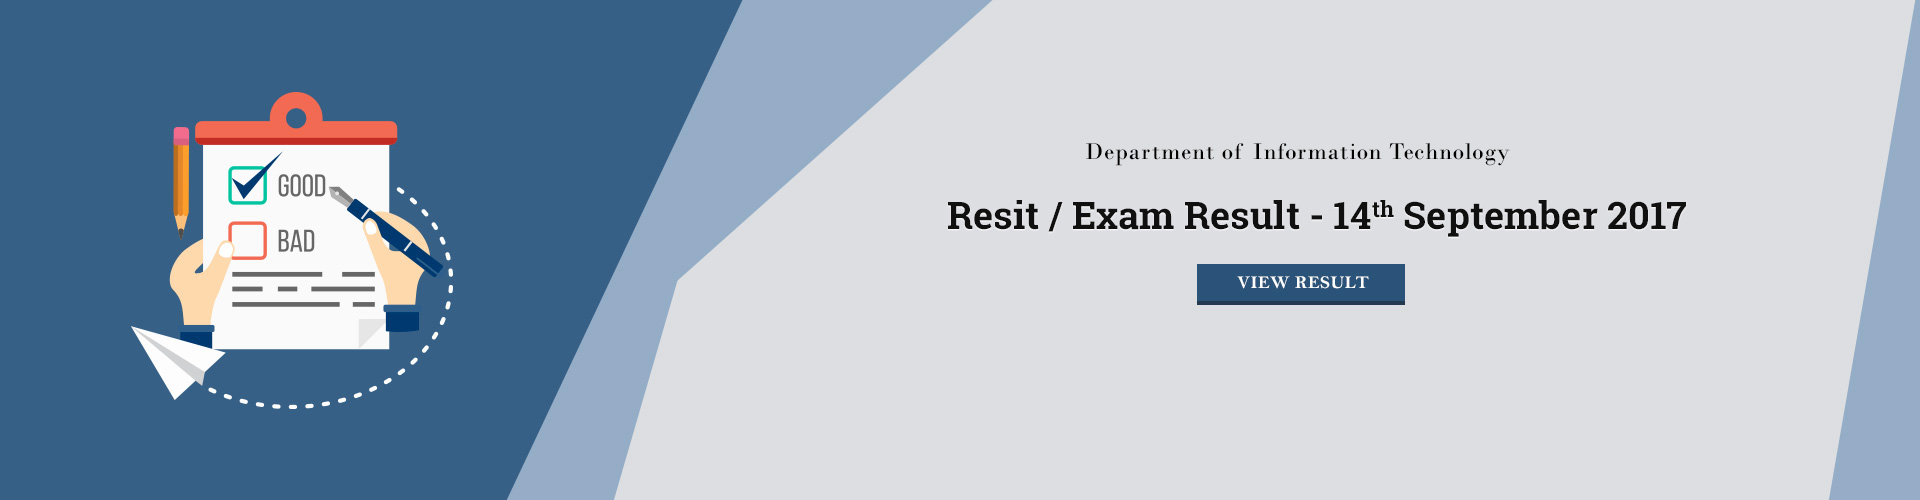 IT - Resit / Exit Exam Results - 14 September 2017